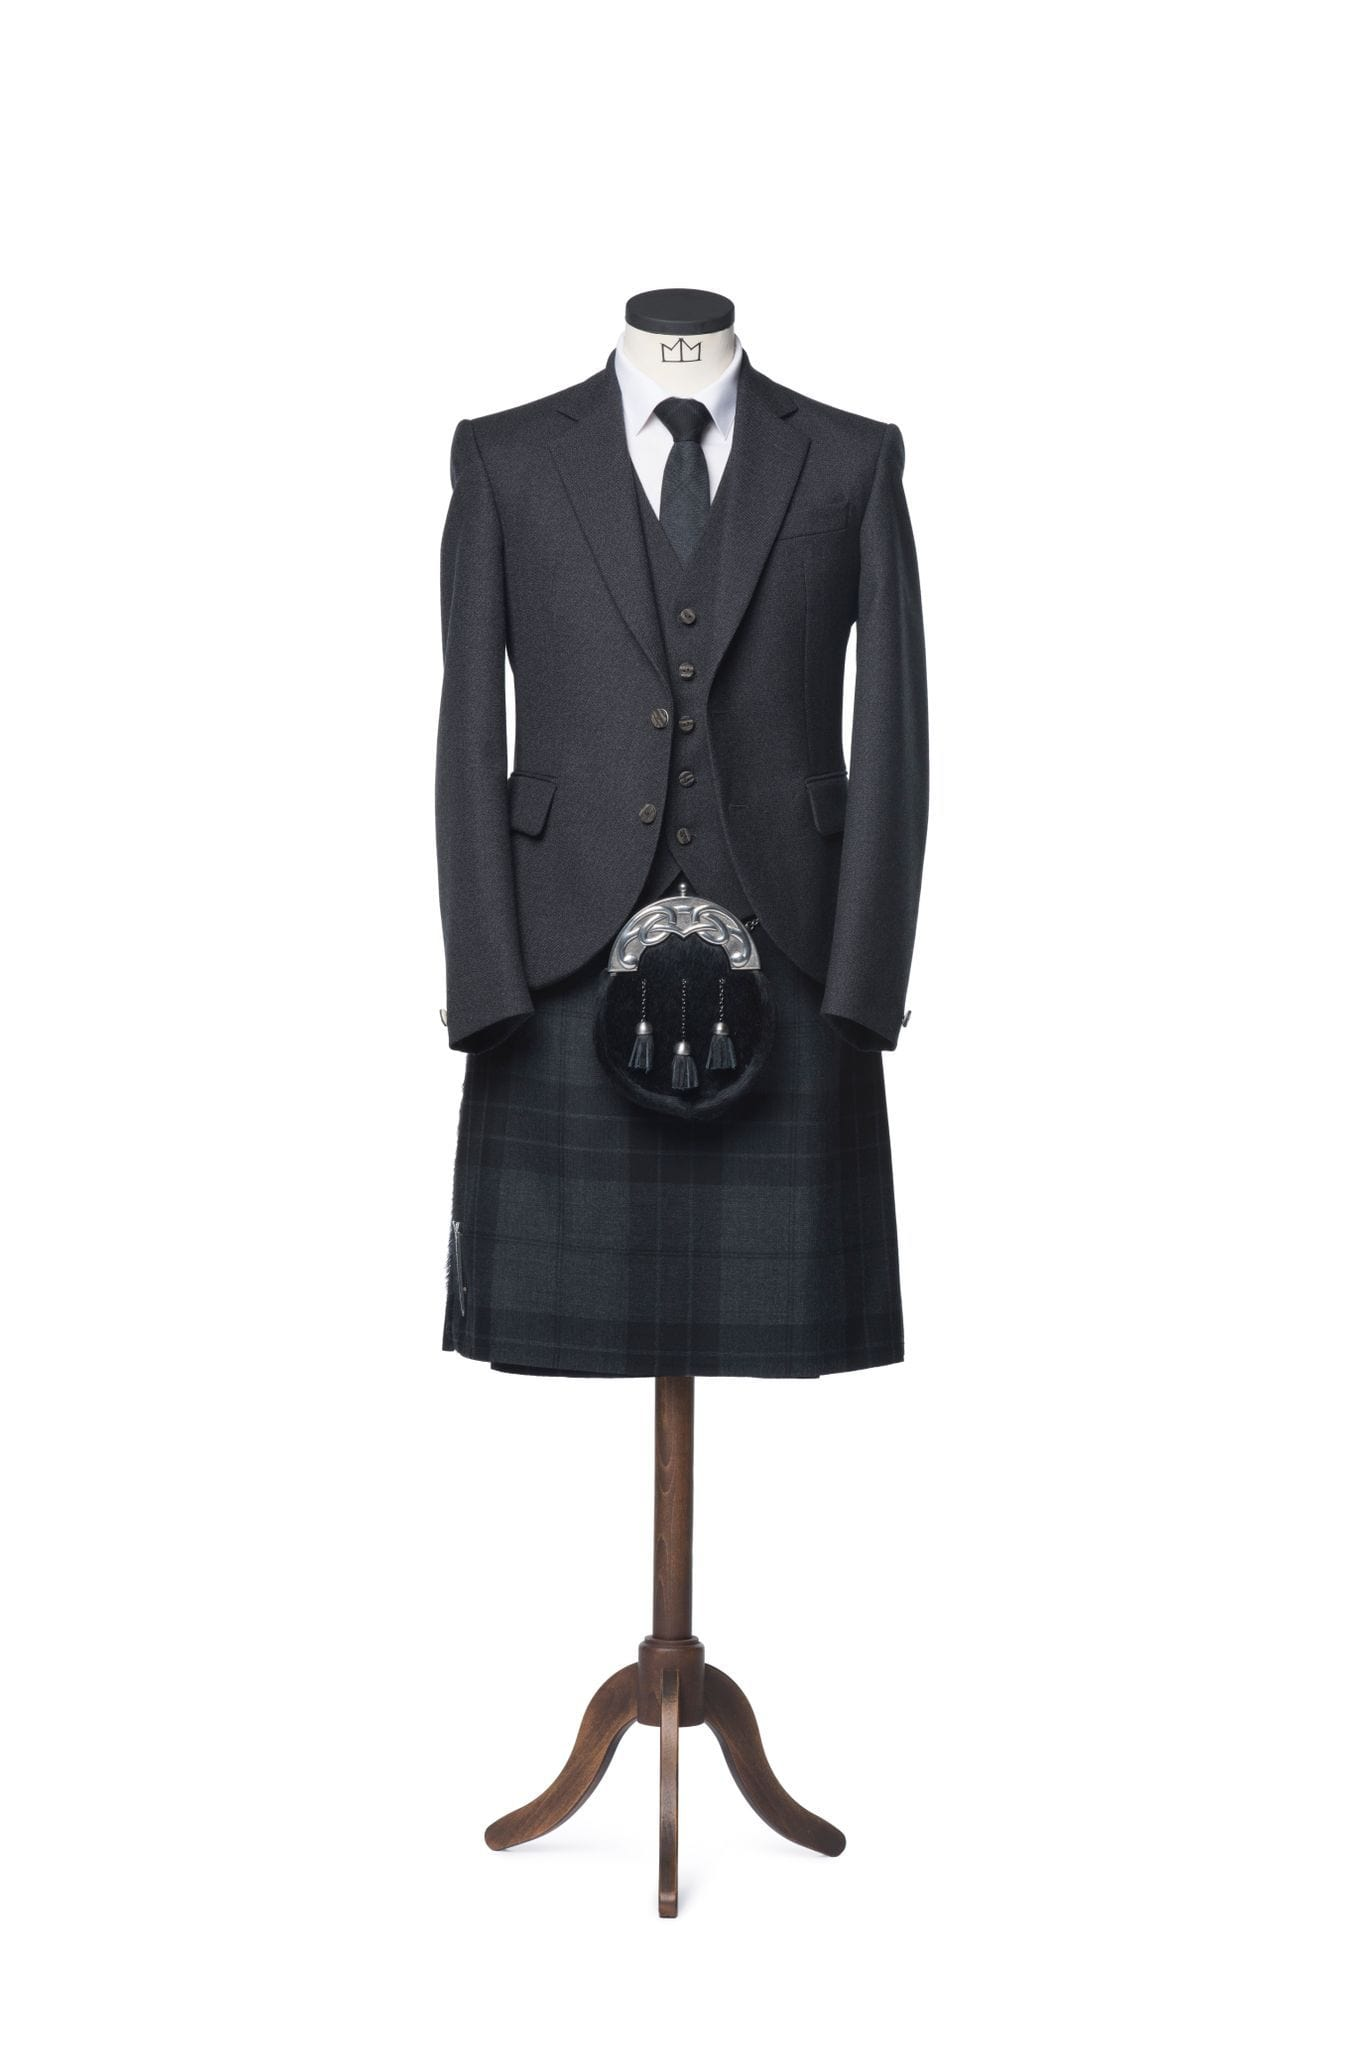 macgregorandmacduff Kilt Outfit Charcoal Glen Orchy Tweed Package - Choose Your Tartan